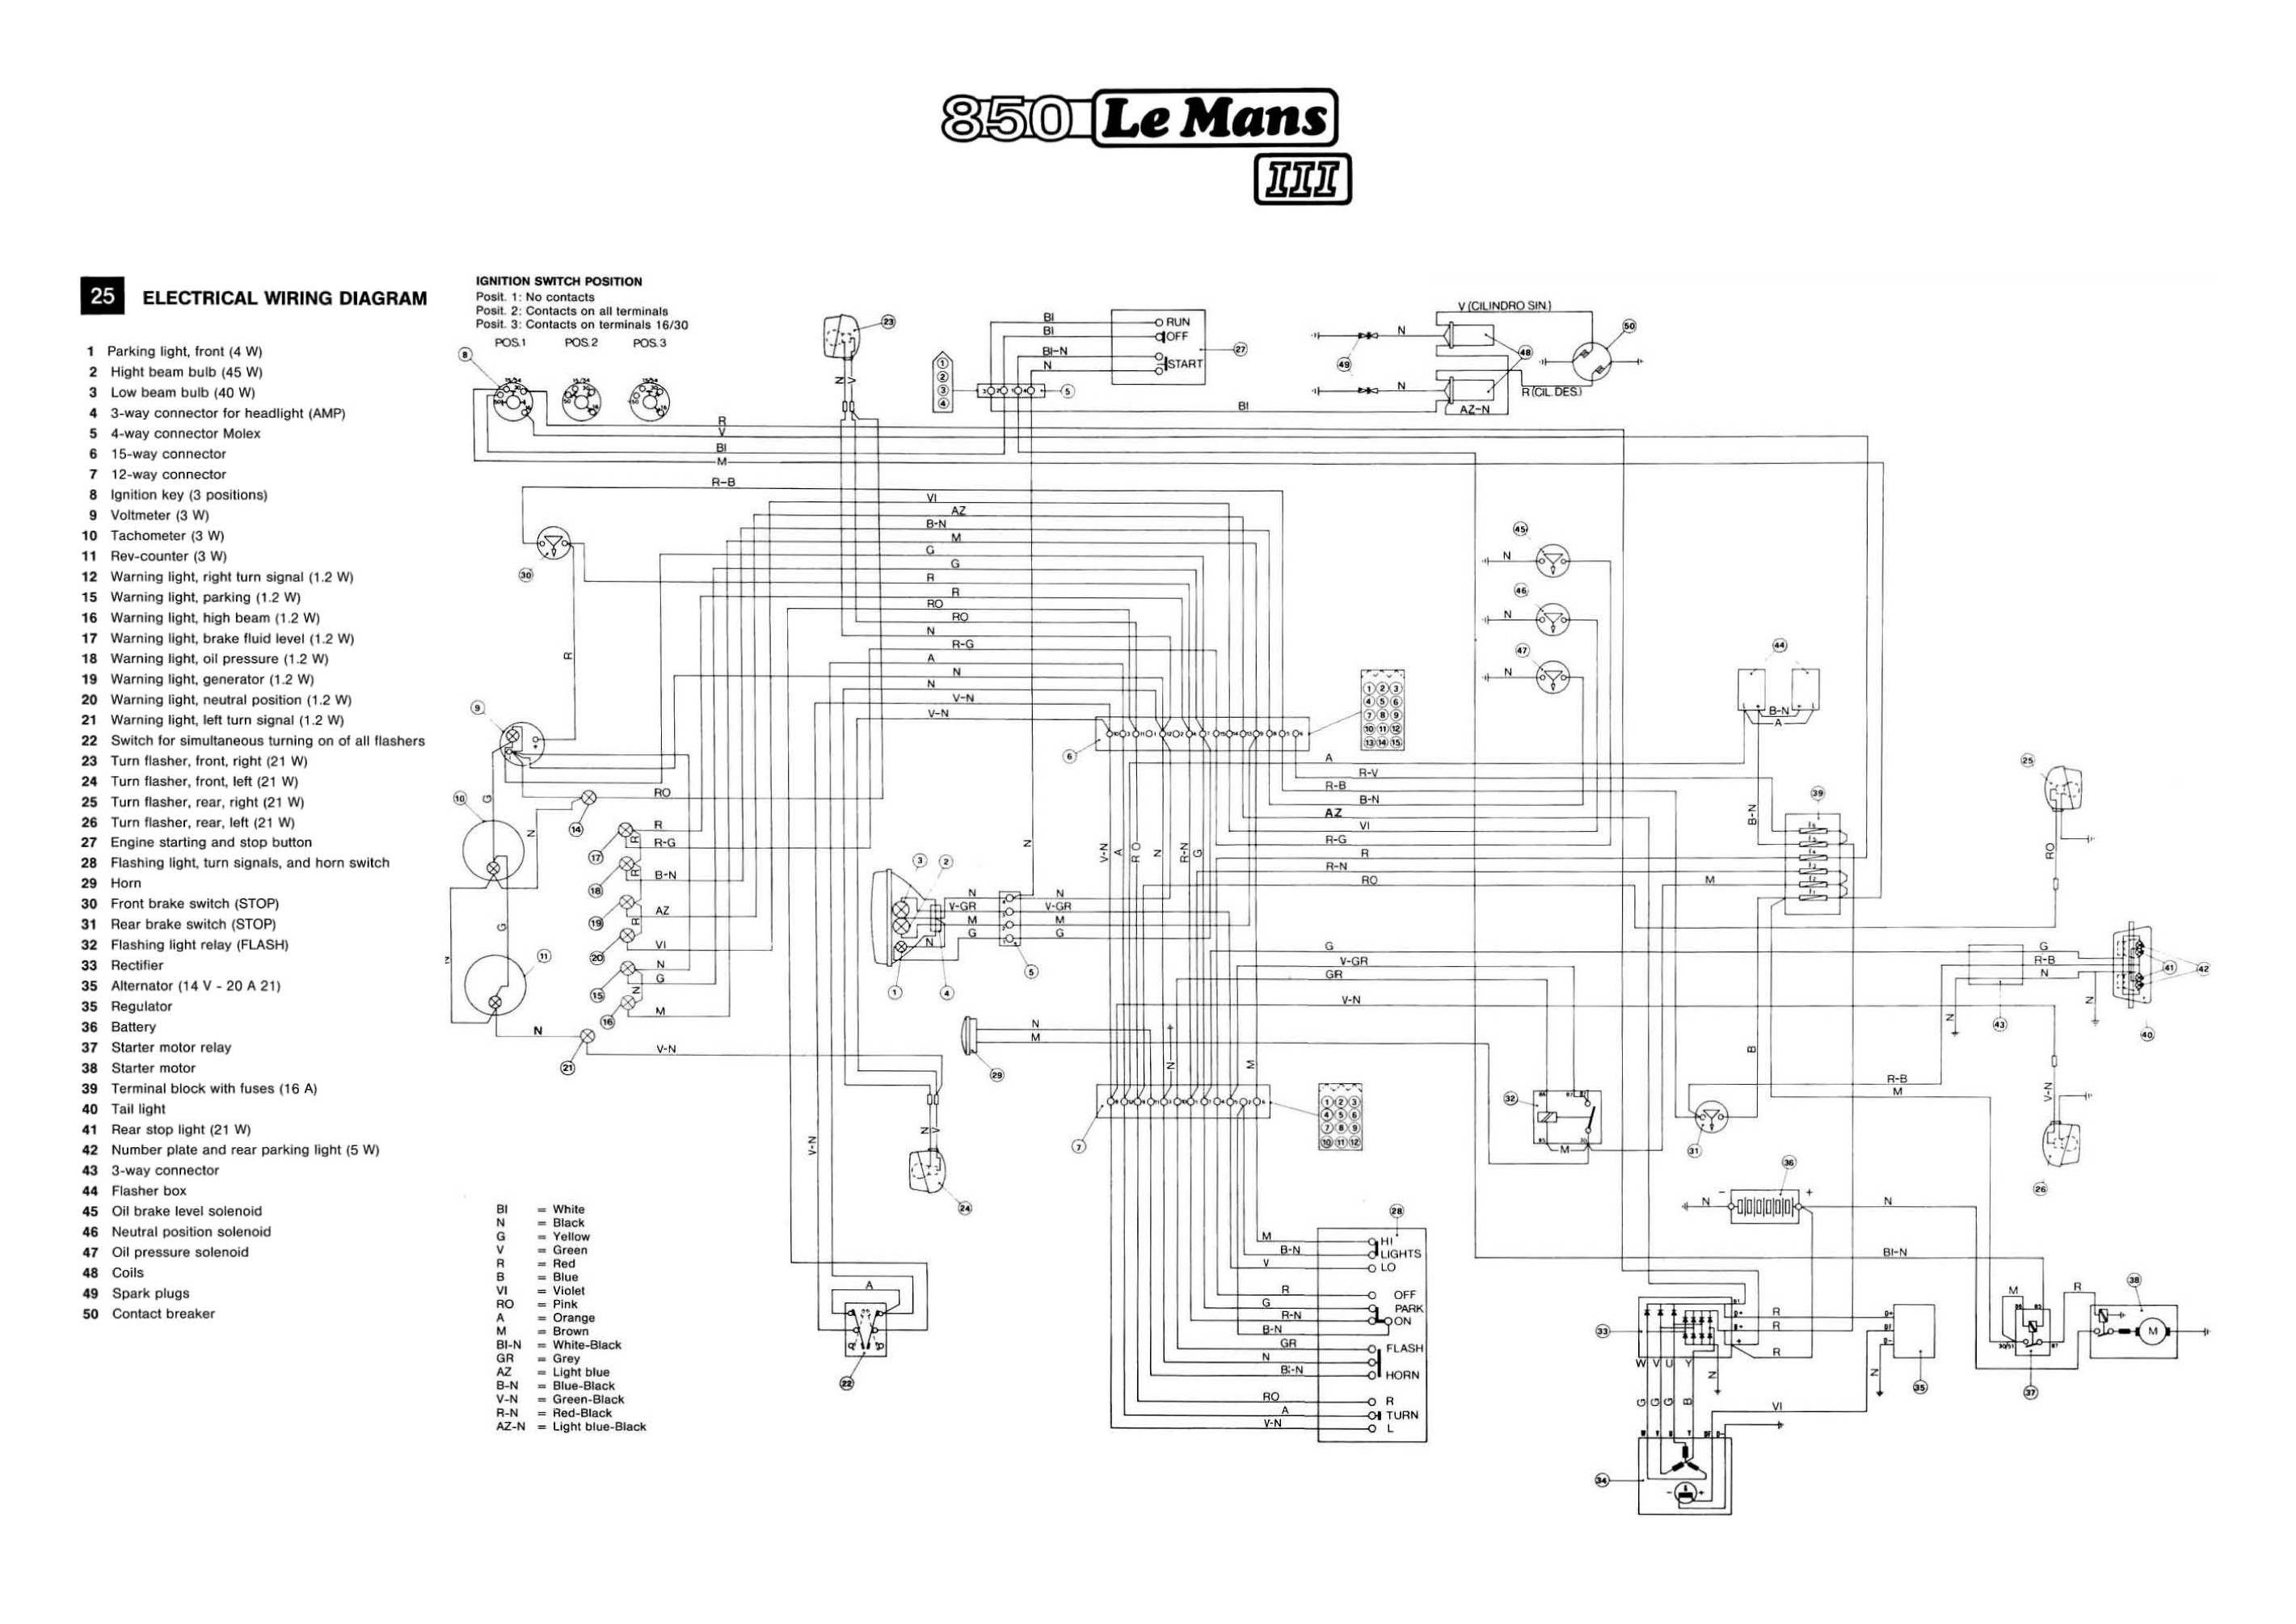 85 Hp Johnson Outboard Motor Wiring Diagram Wiring